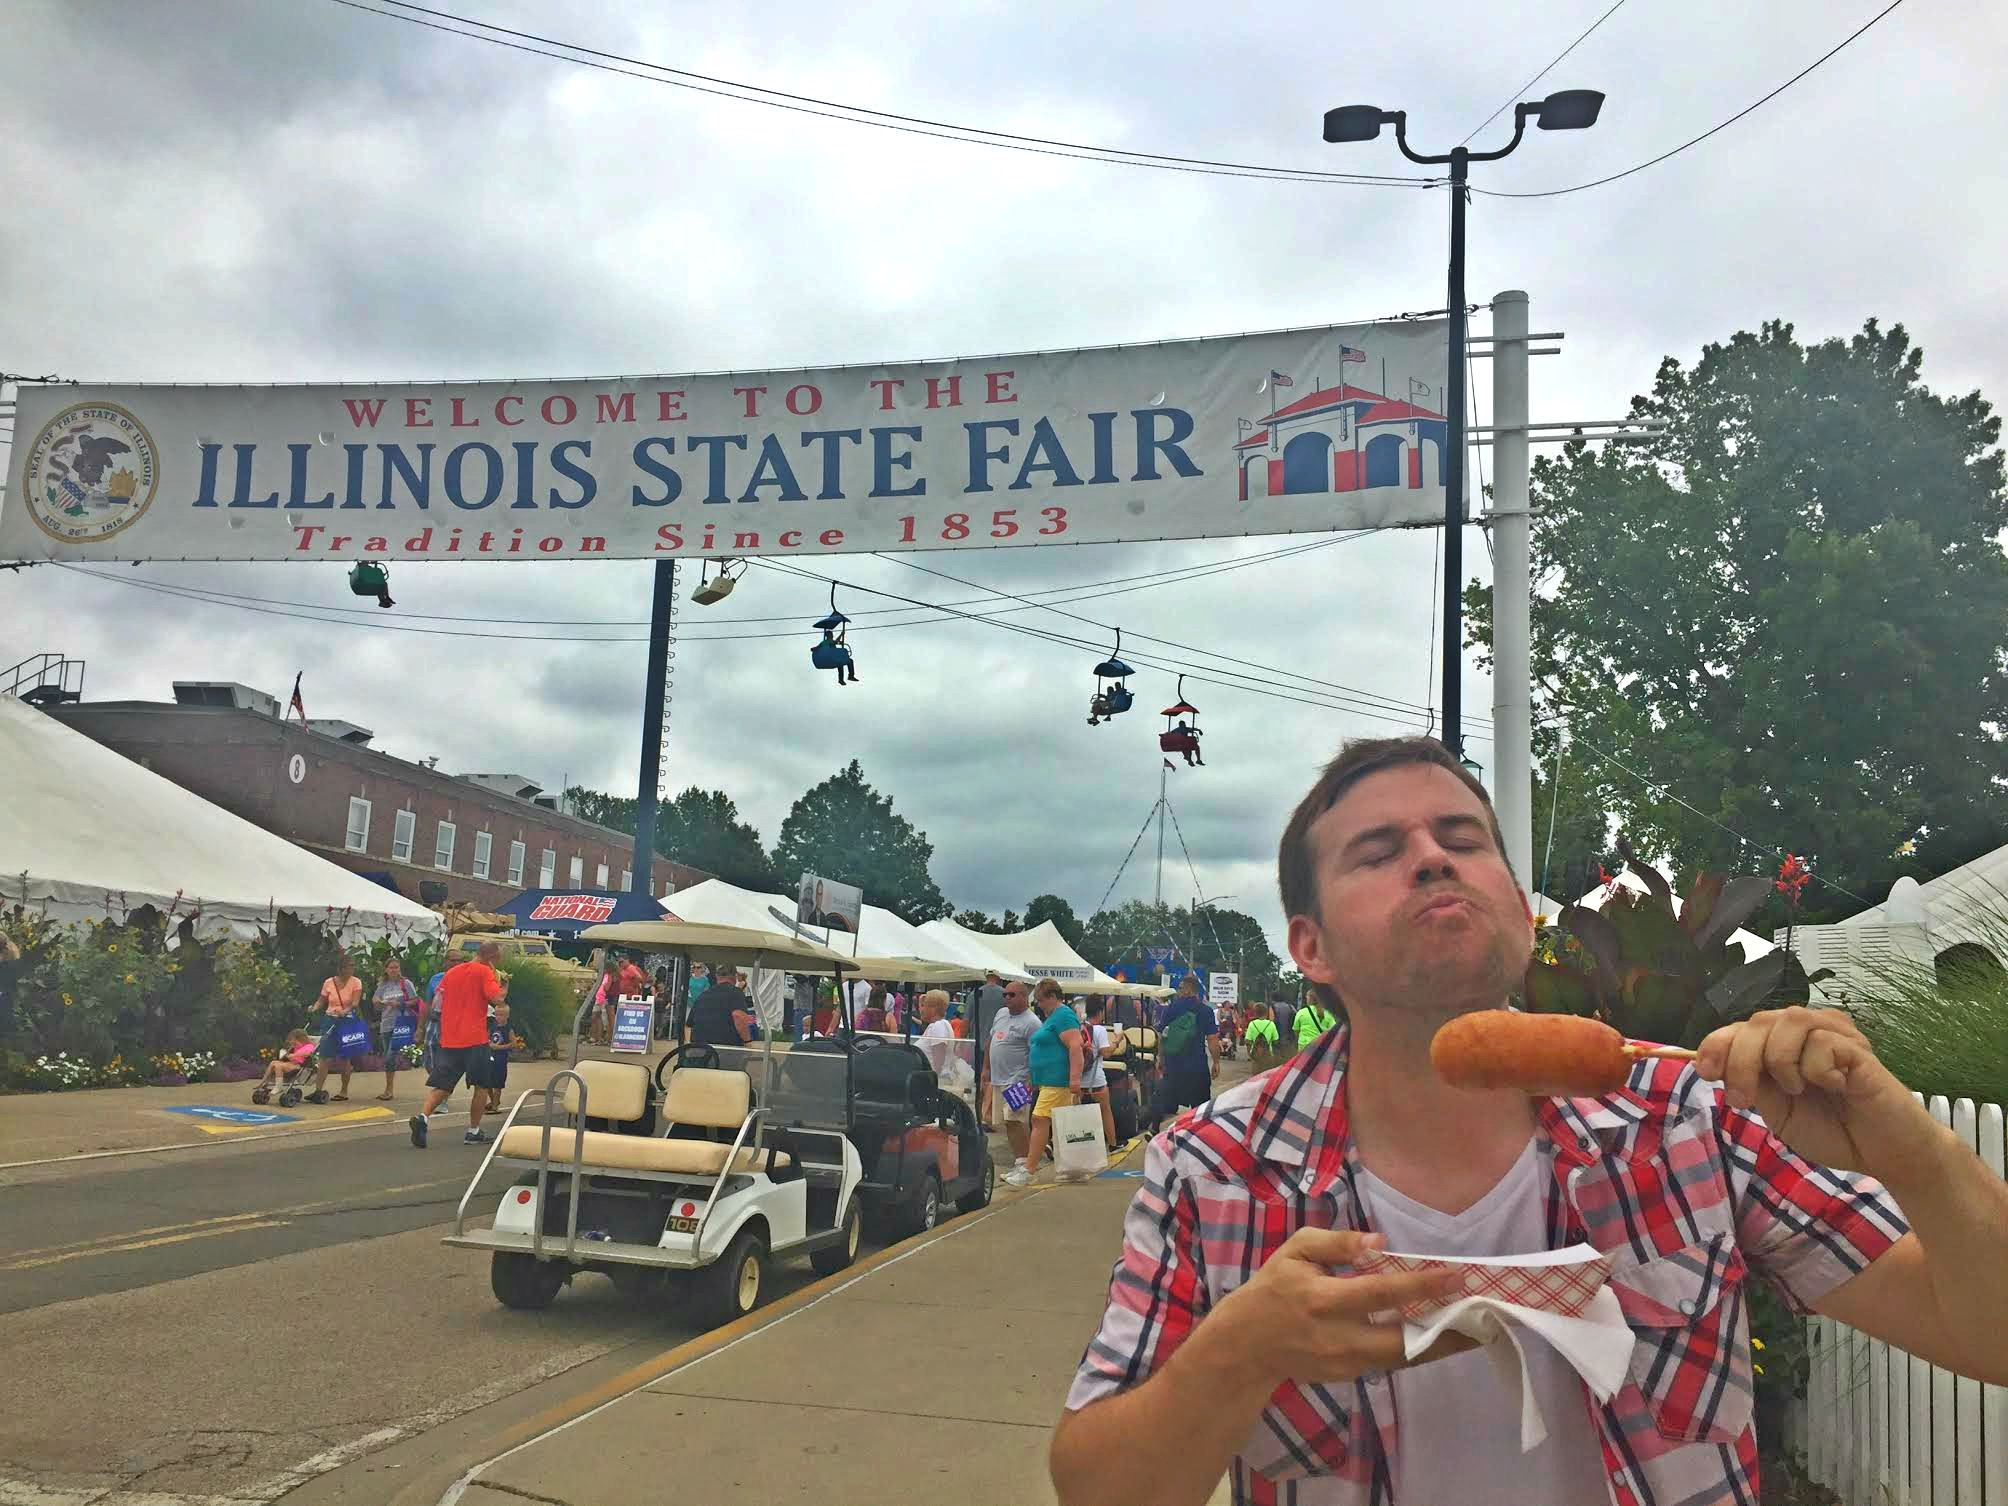 The author savors his first bite of a deep-fried Twinkie at the Illinois State Fair.